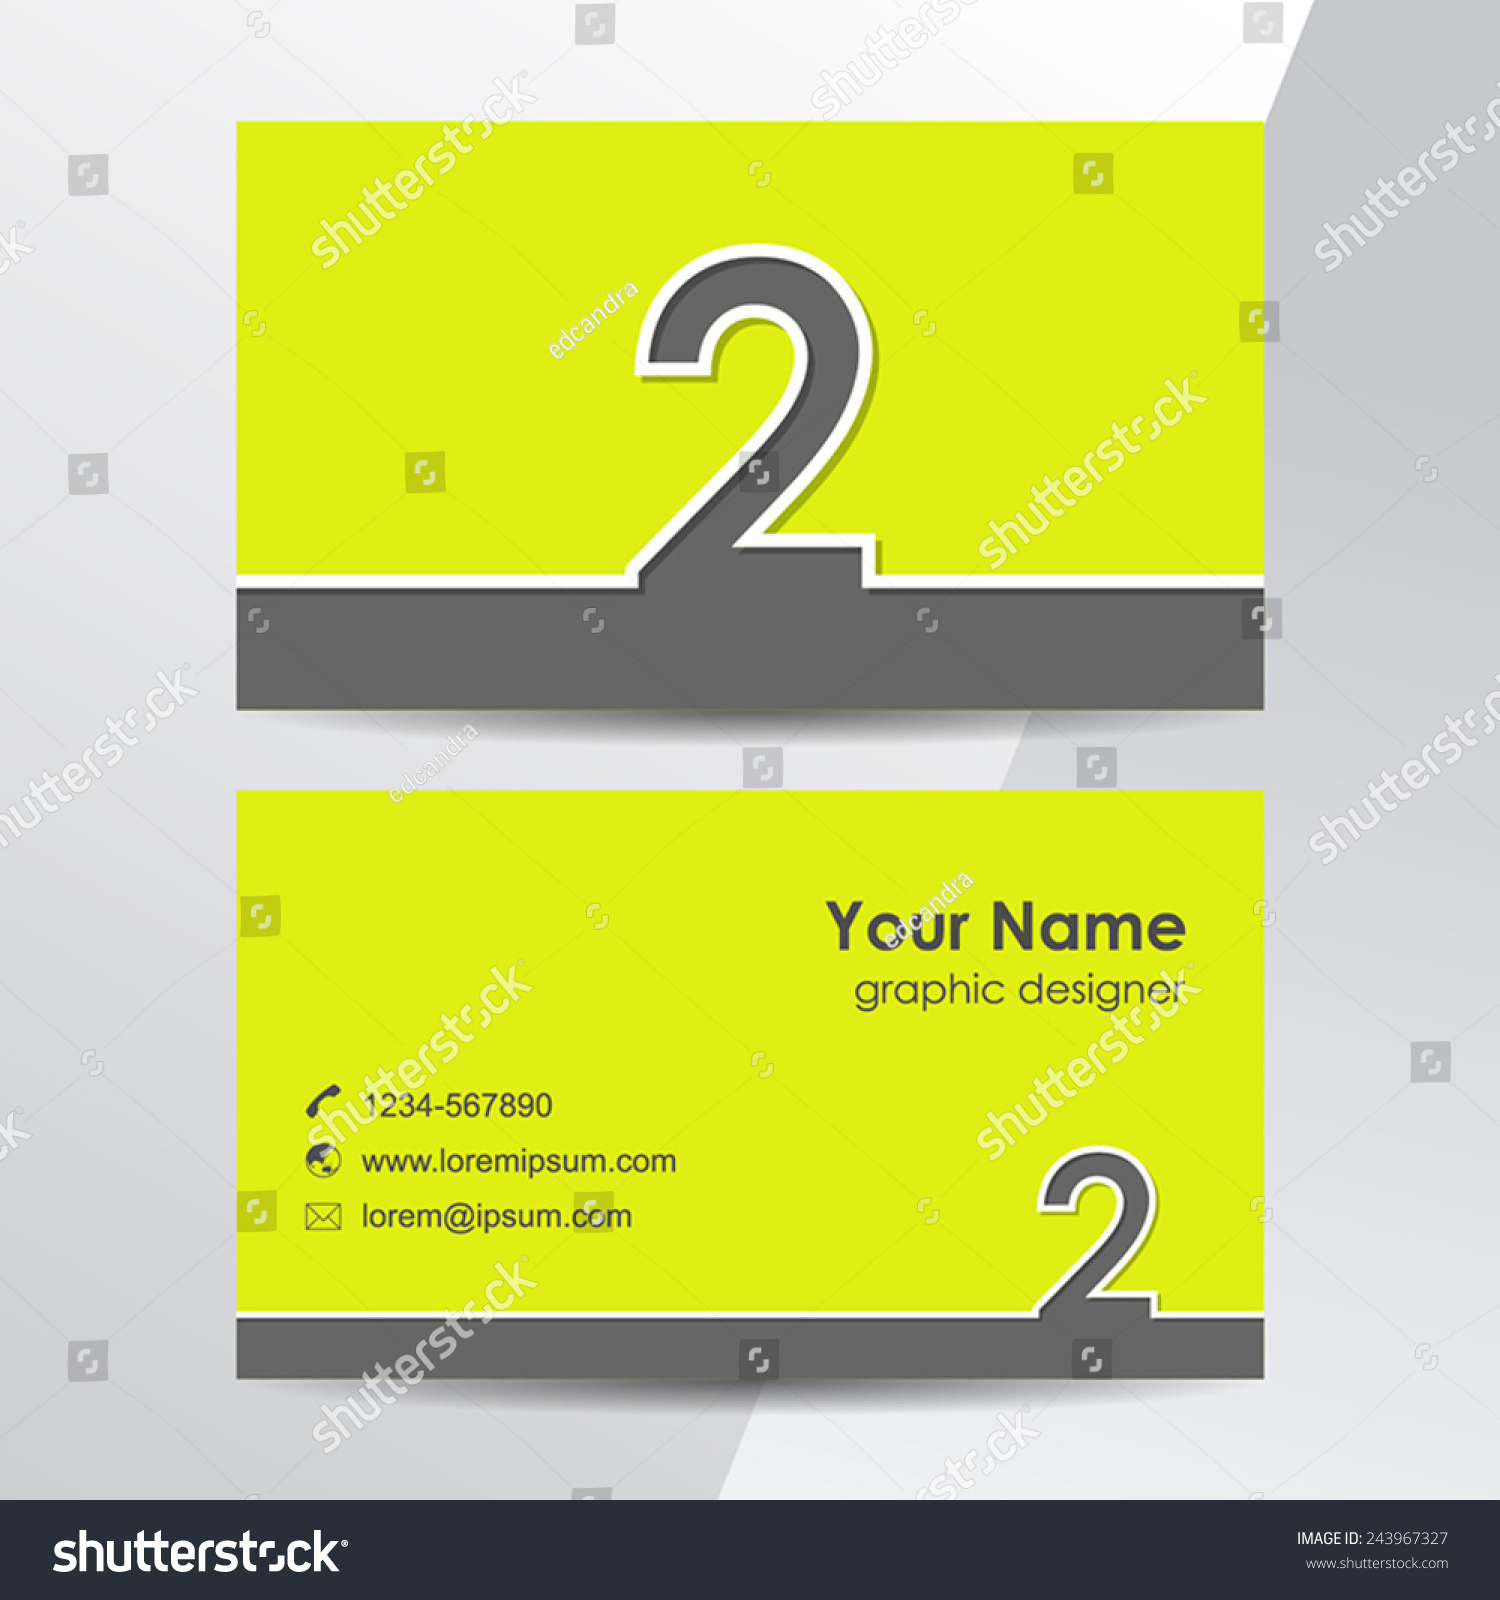 Business cards template number 2 vector stock vector 243967327 business cards template with number 2 vector flat design pronofoot35fo Gallery